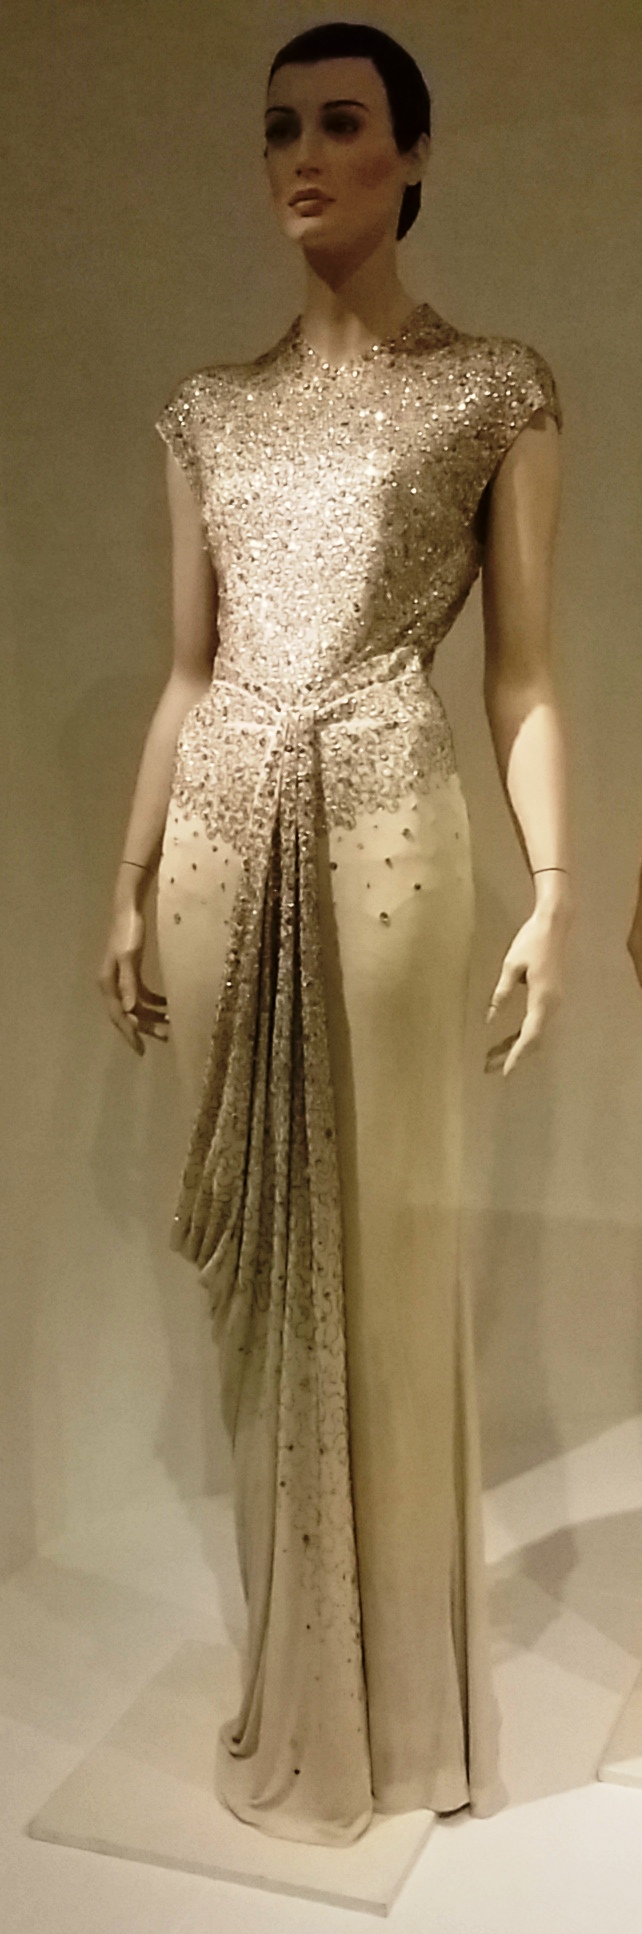 File:1960 evening gown by Norman Hartnell. Cream silk jersey with ...